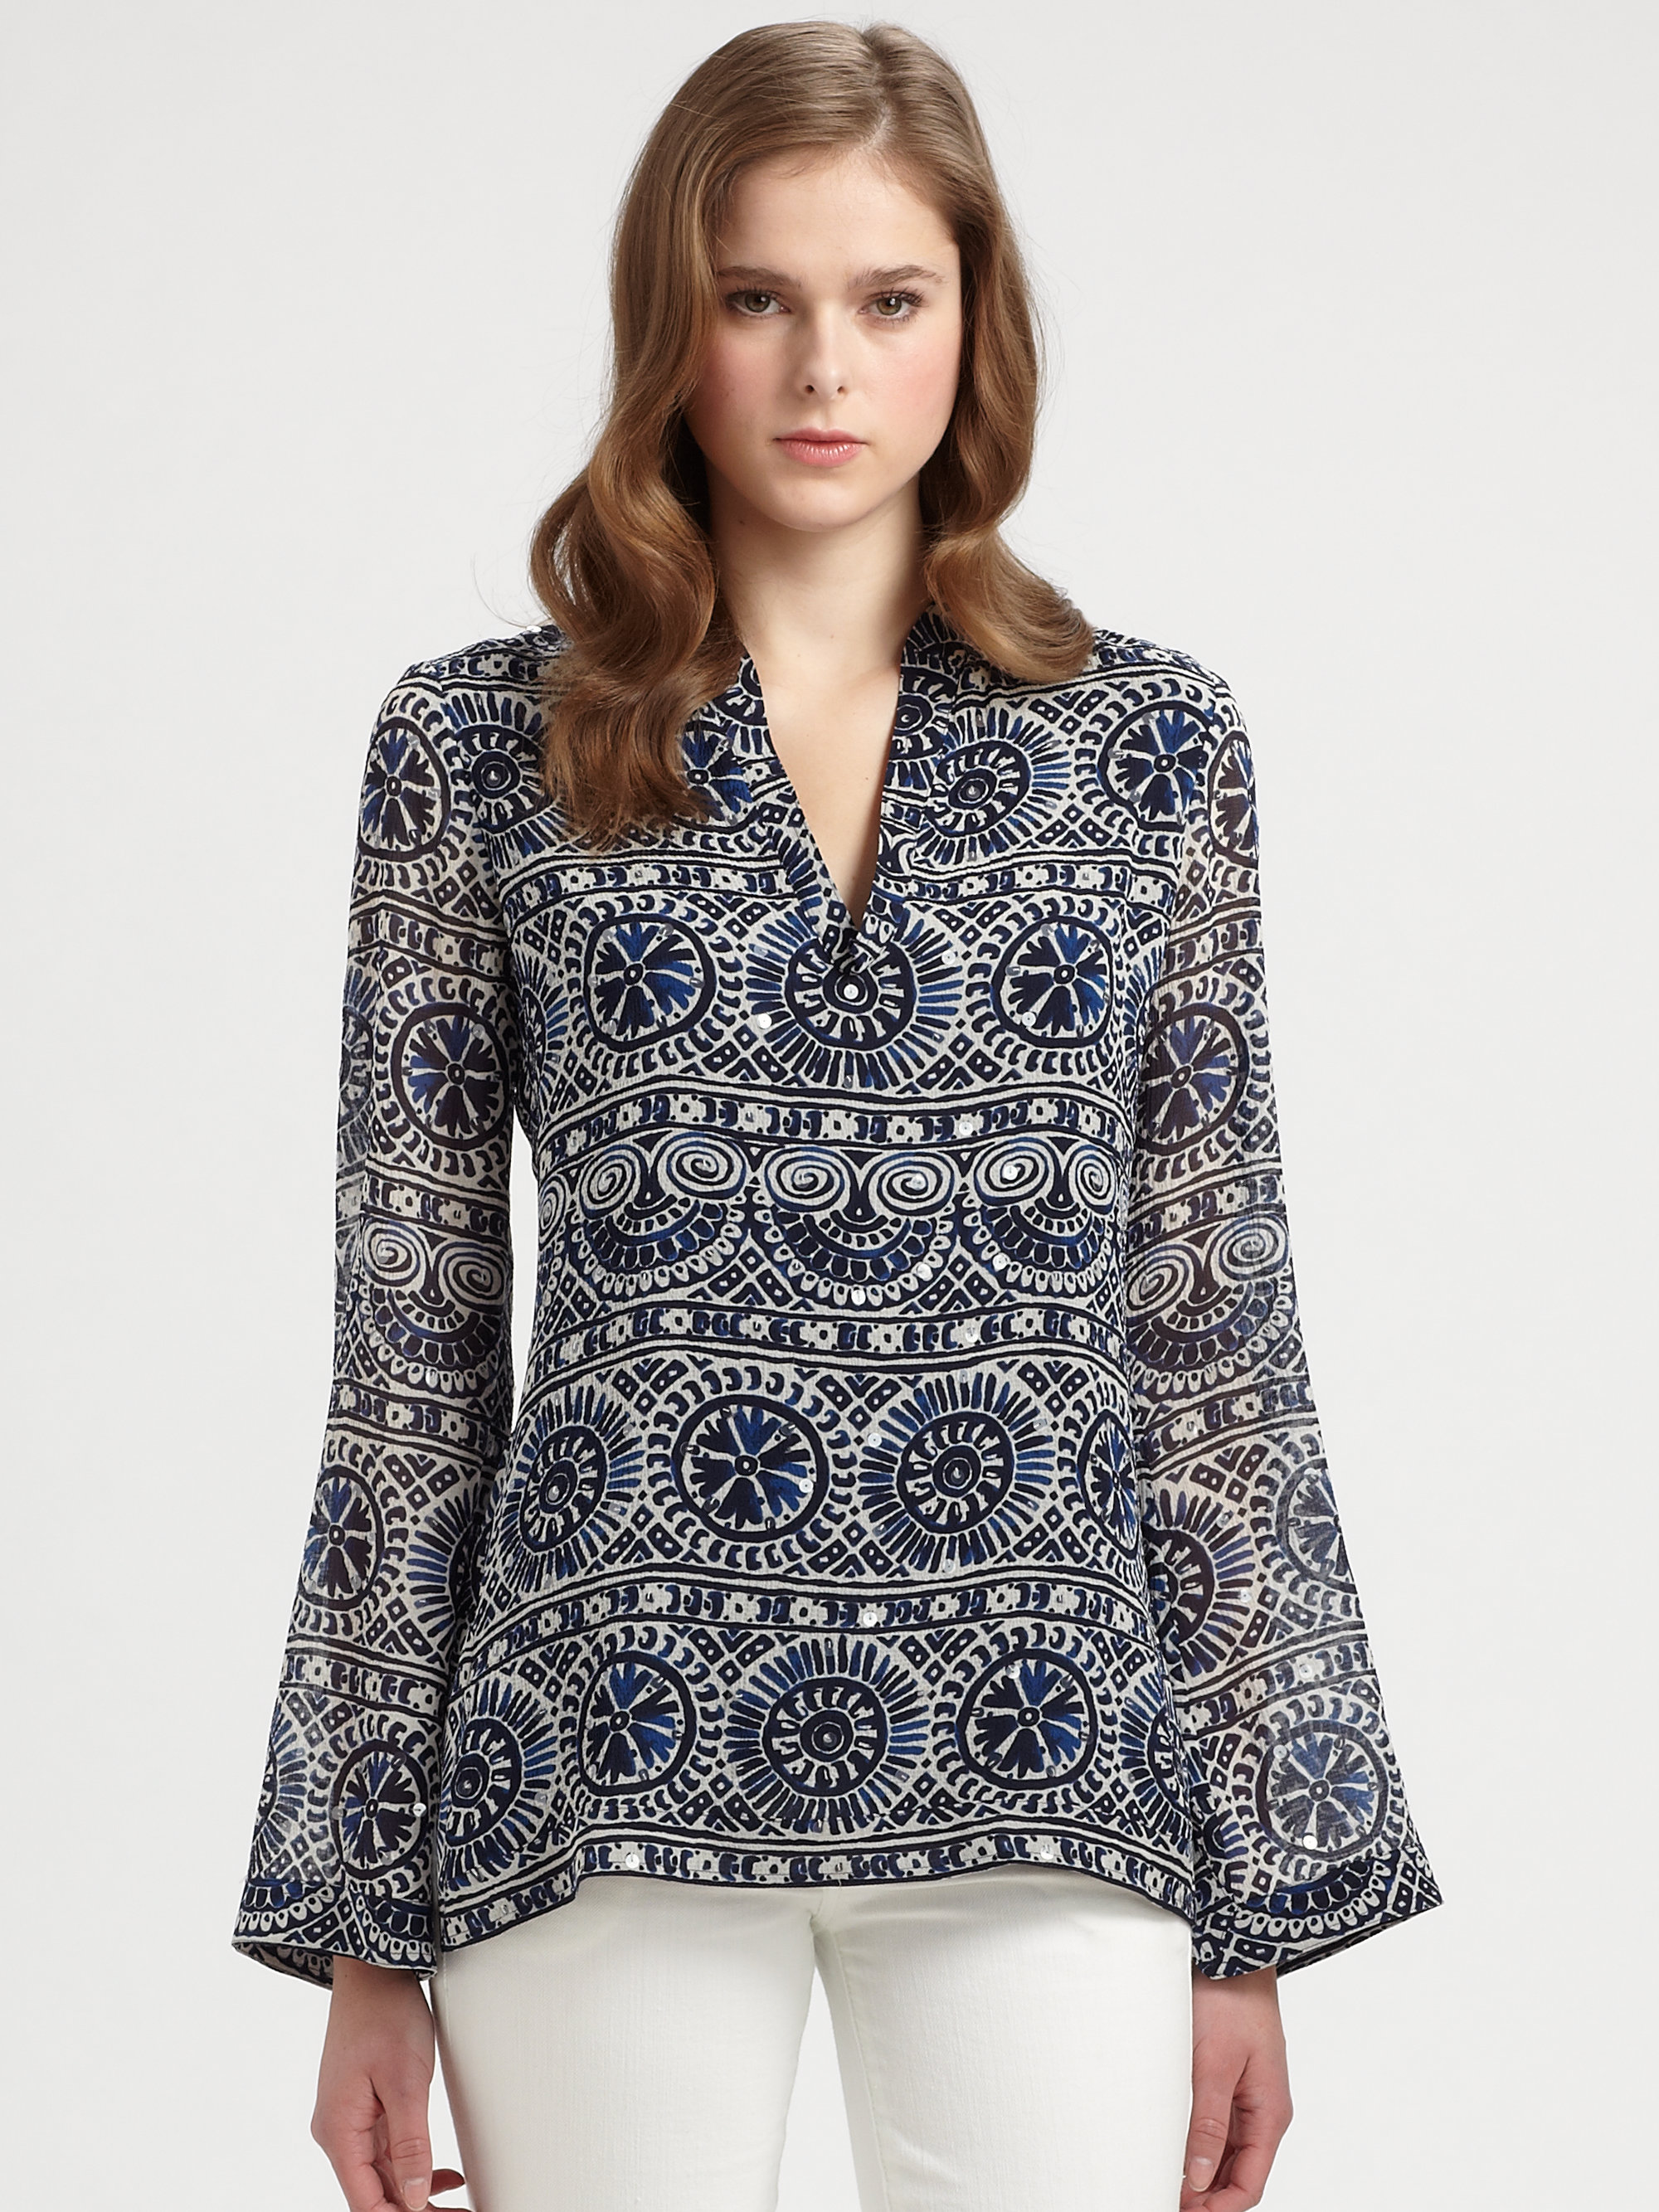 ca652362abc Tory Burch Stephanie Tunic in Blue - Lyst